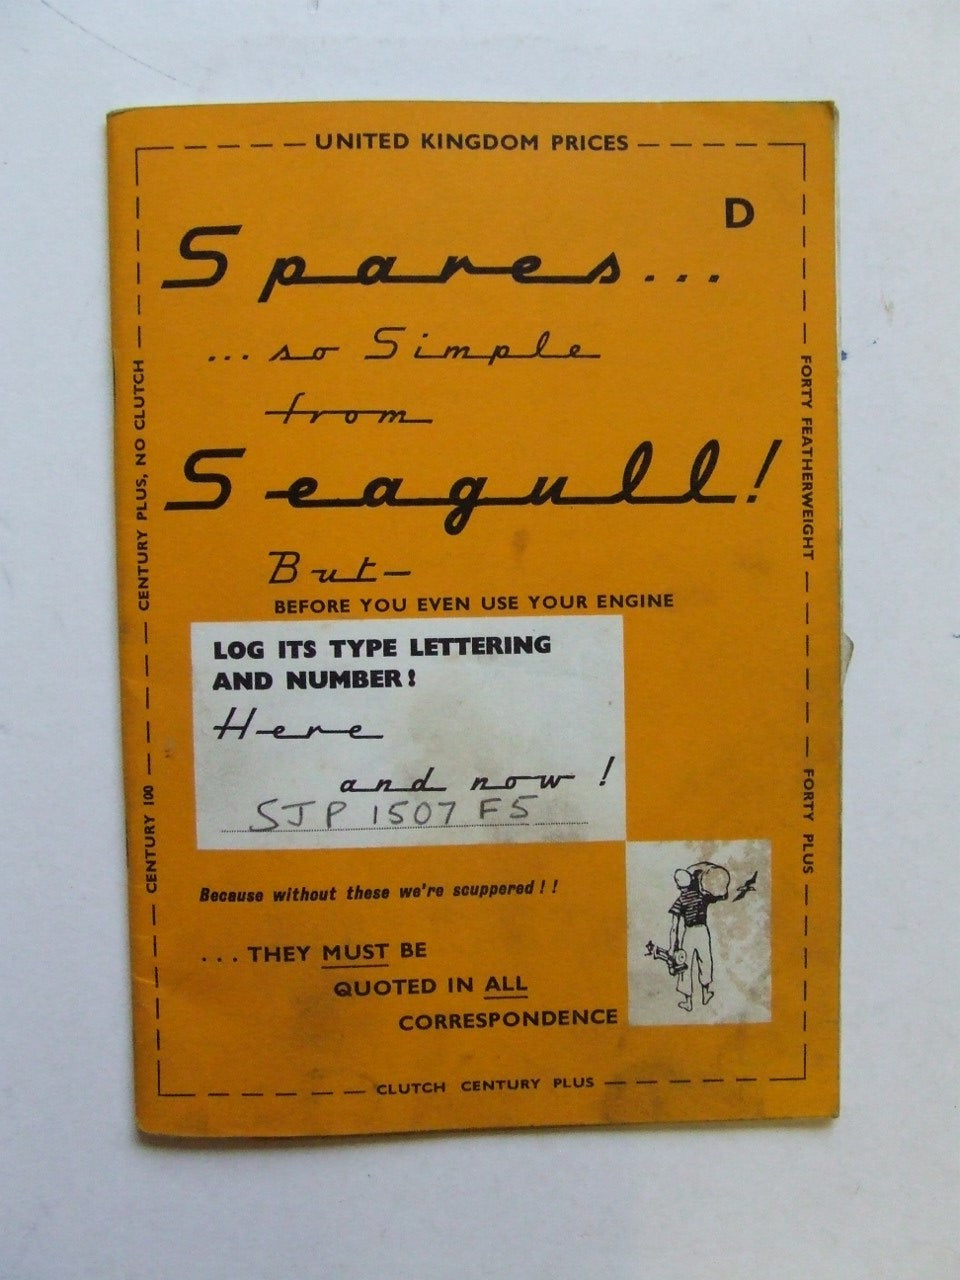 Spares...so simple from  Seagull  [Seagull outboard motor spares booklet]